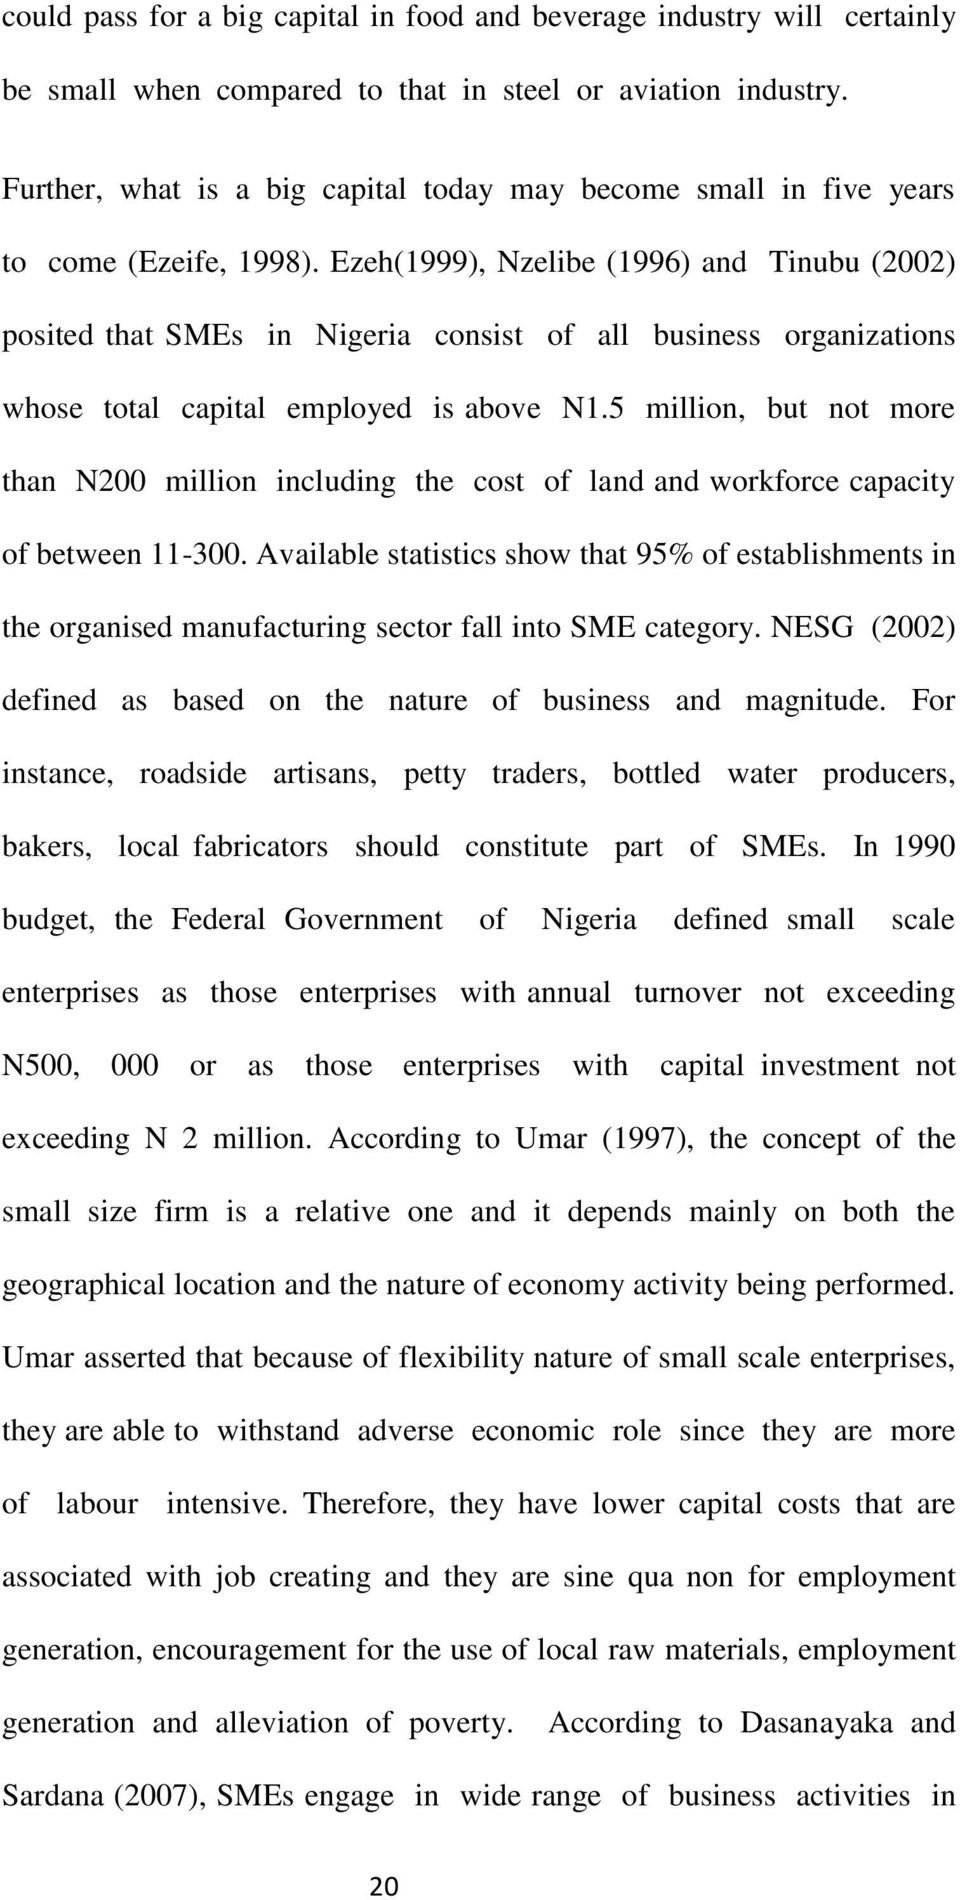 Ezeh(1999), Nzelibe (1996) and Tinubu (2002) posited that SMEs in Nigeria consist of all business organizations whose total capital employed is above N1.